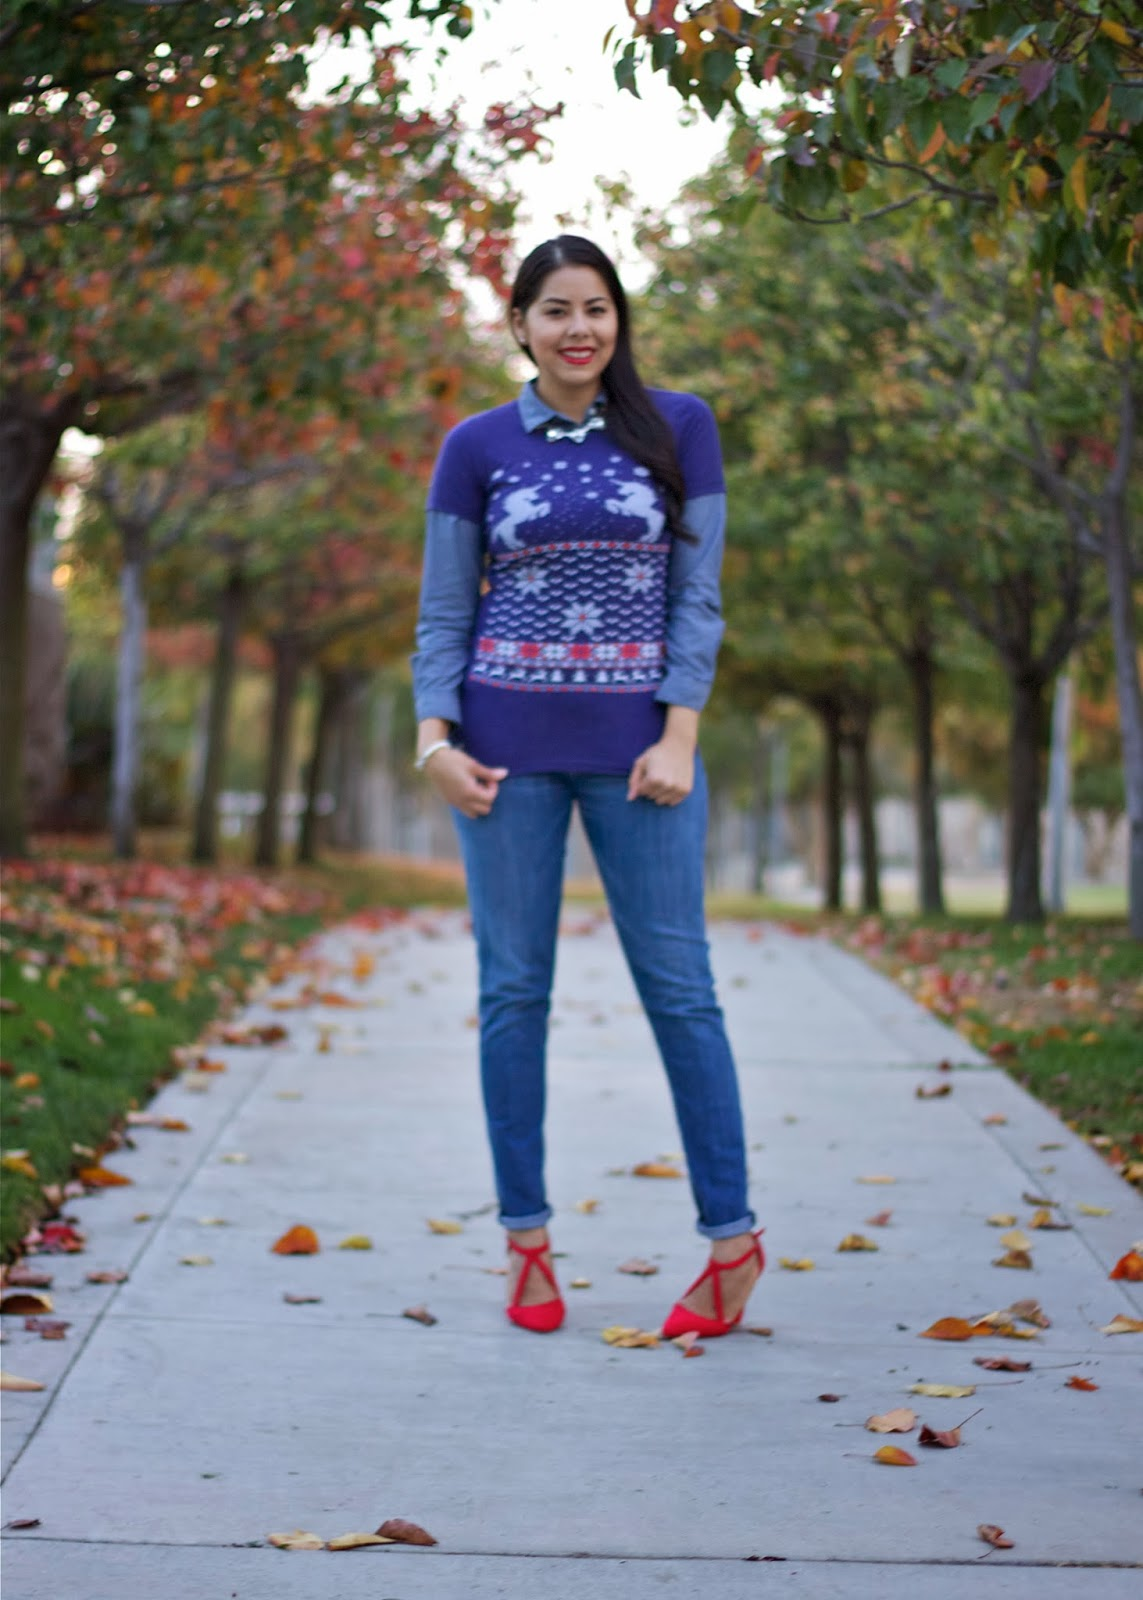 Glaming Up The Ugly Christmas Tee Lil Bits Of Chic By Paulina Mo